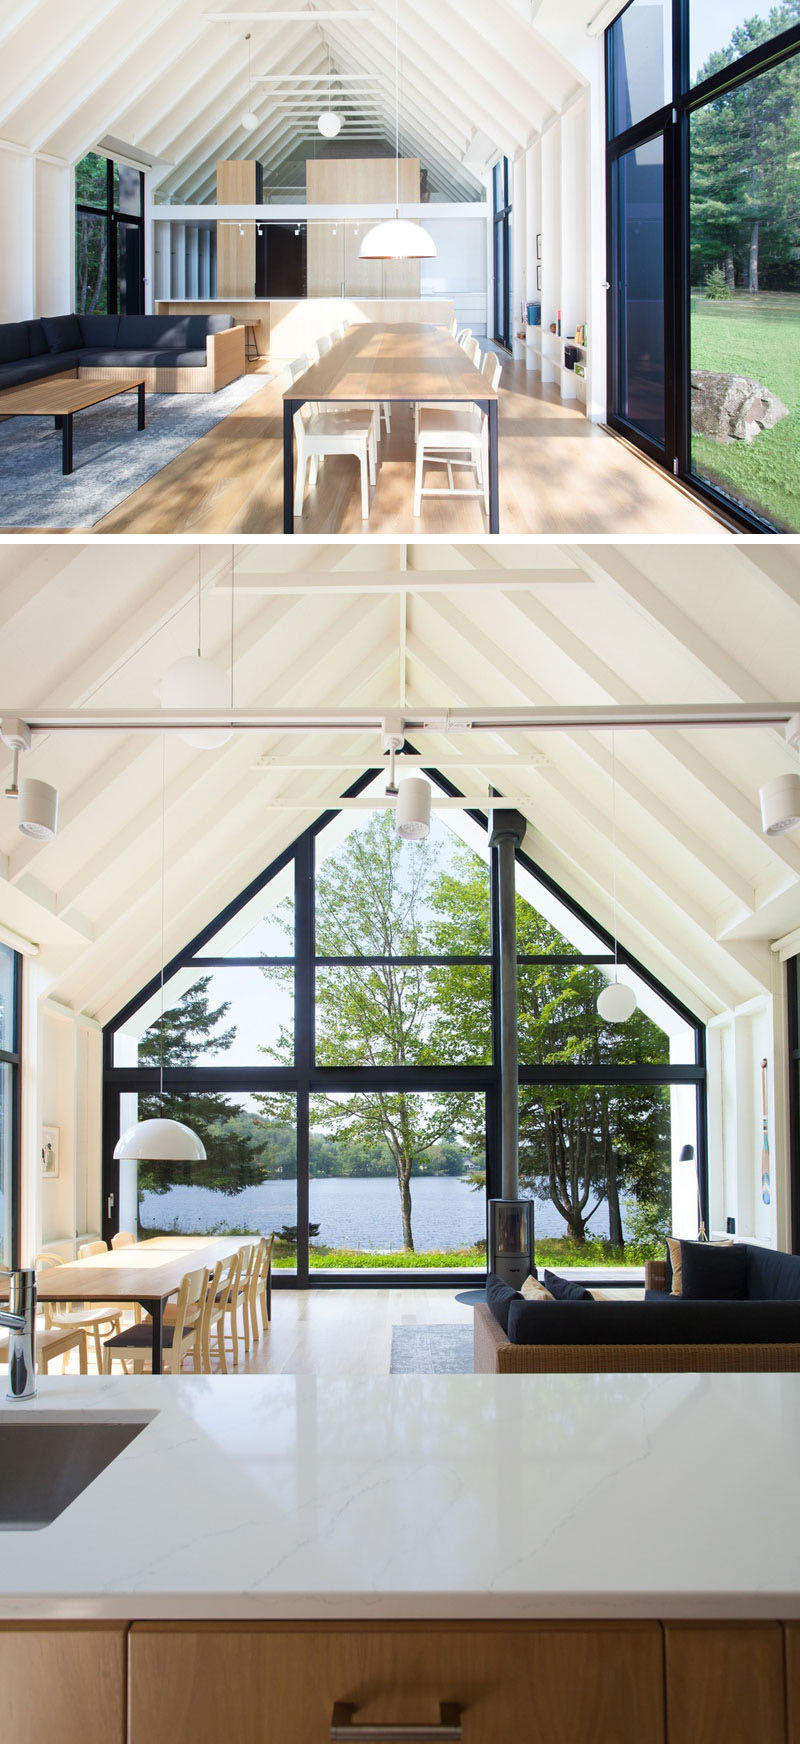 In the main living area of this modern vacation house, there's a kitchen, living area and dining area, that features a wall of glass that looks out to the lake and a large double-height gable extending outward to cover a small porch. #VacationHouse #Windows #InteriorDesign